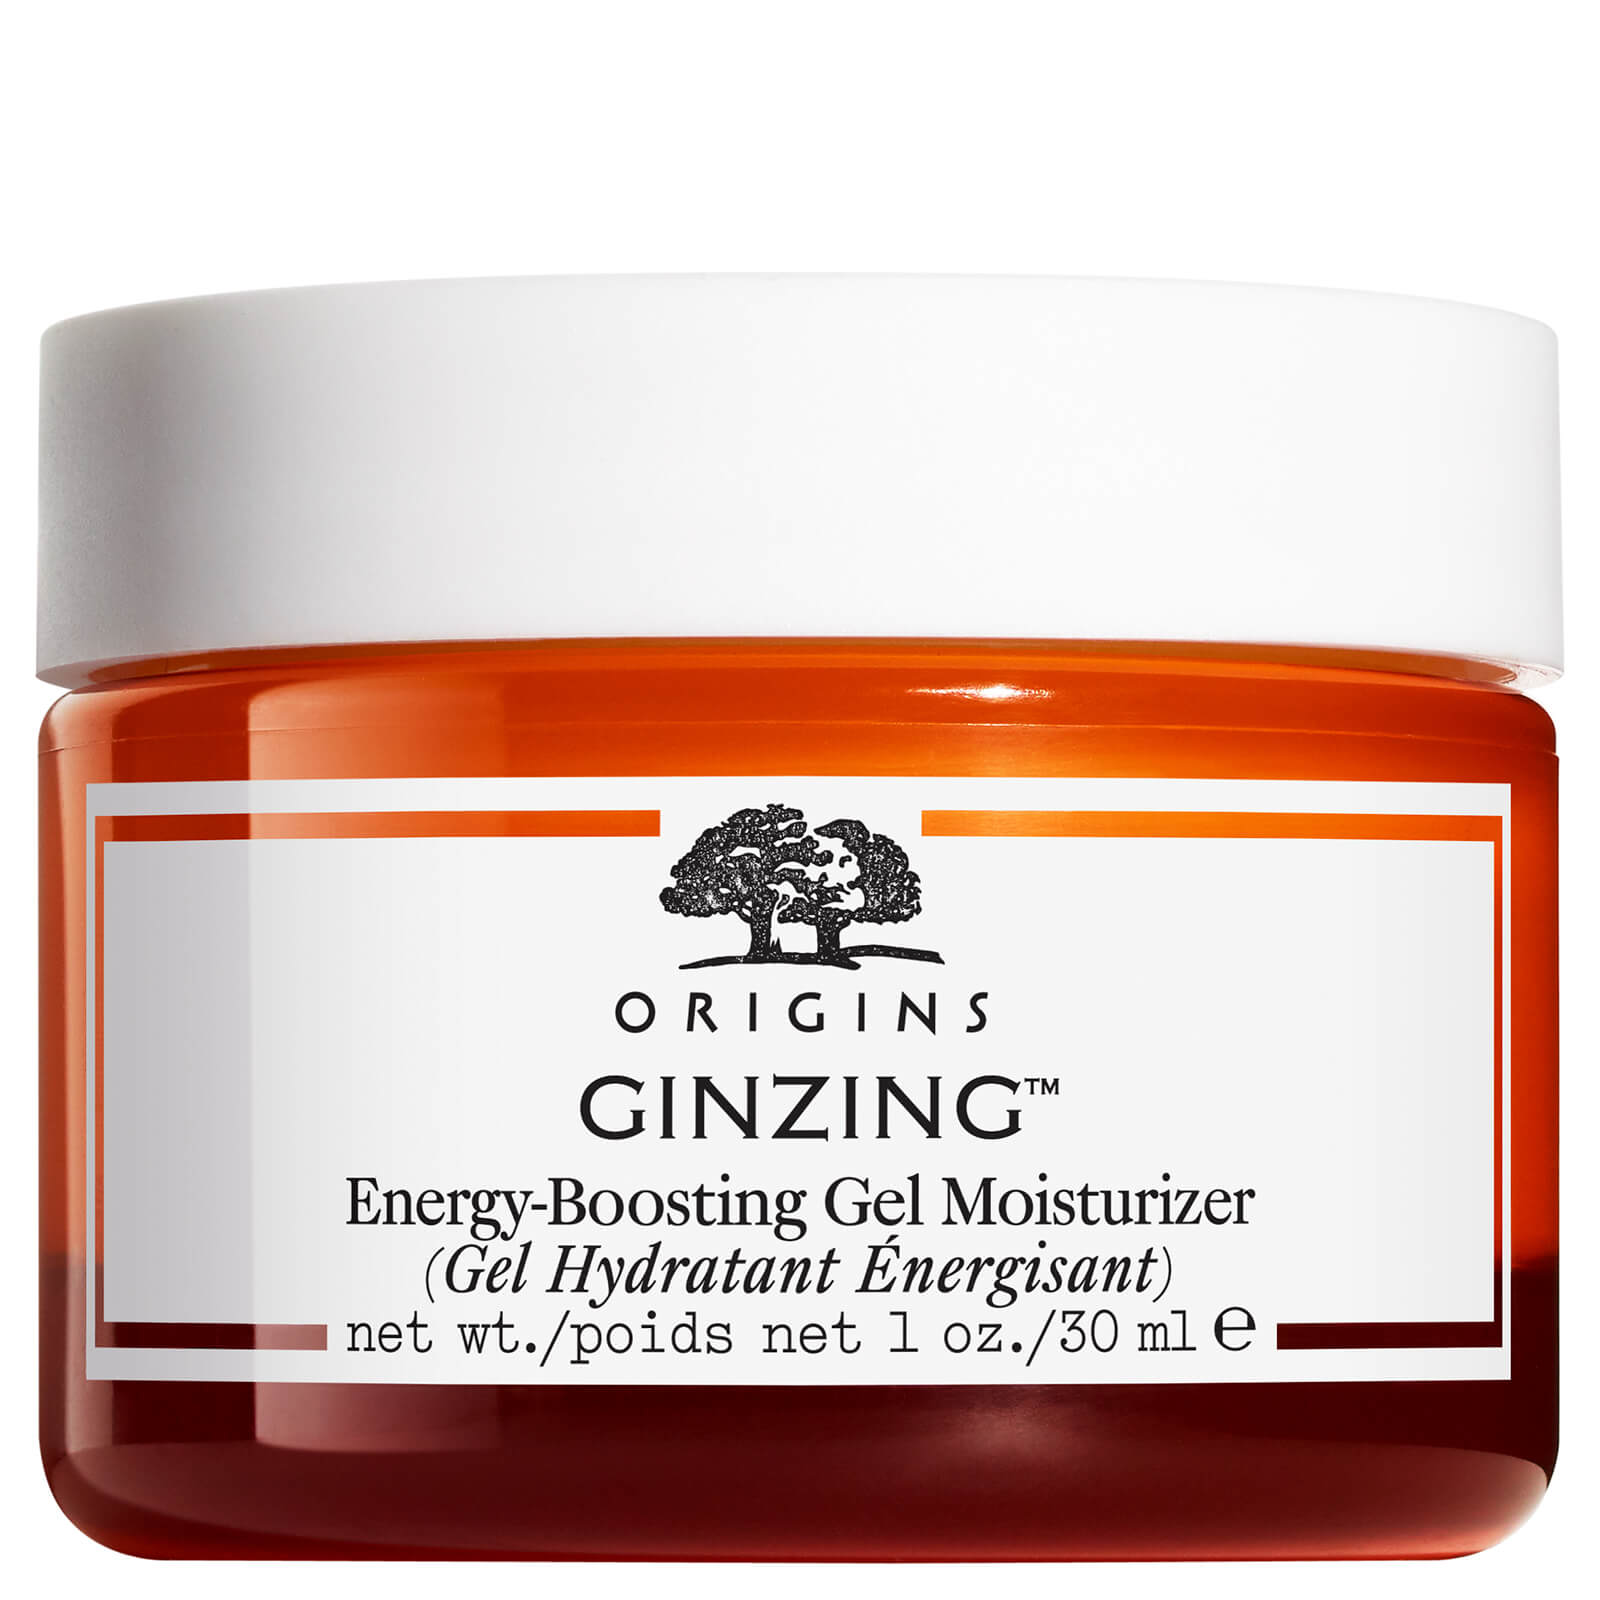 Origins GinZing Energy-Boosting Gel Moisturiser 30ml